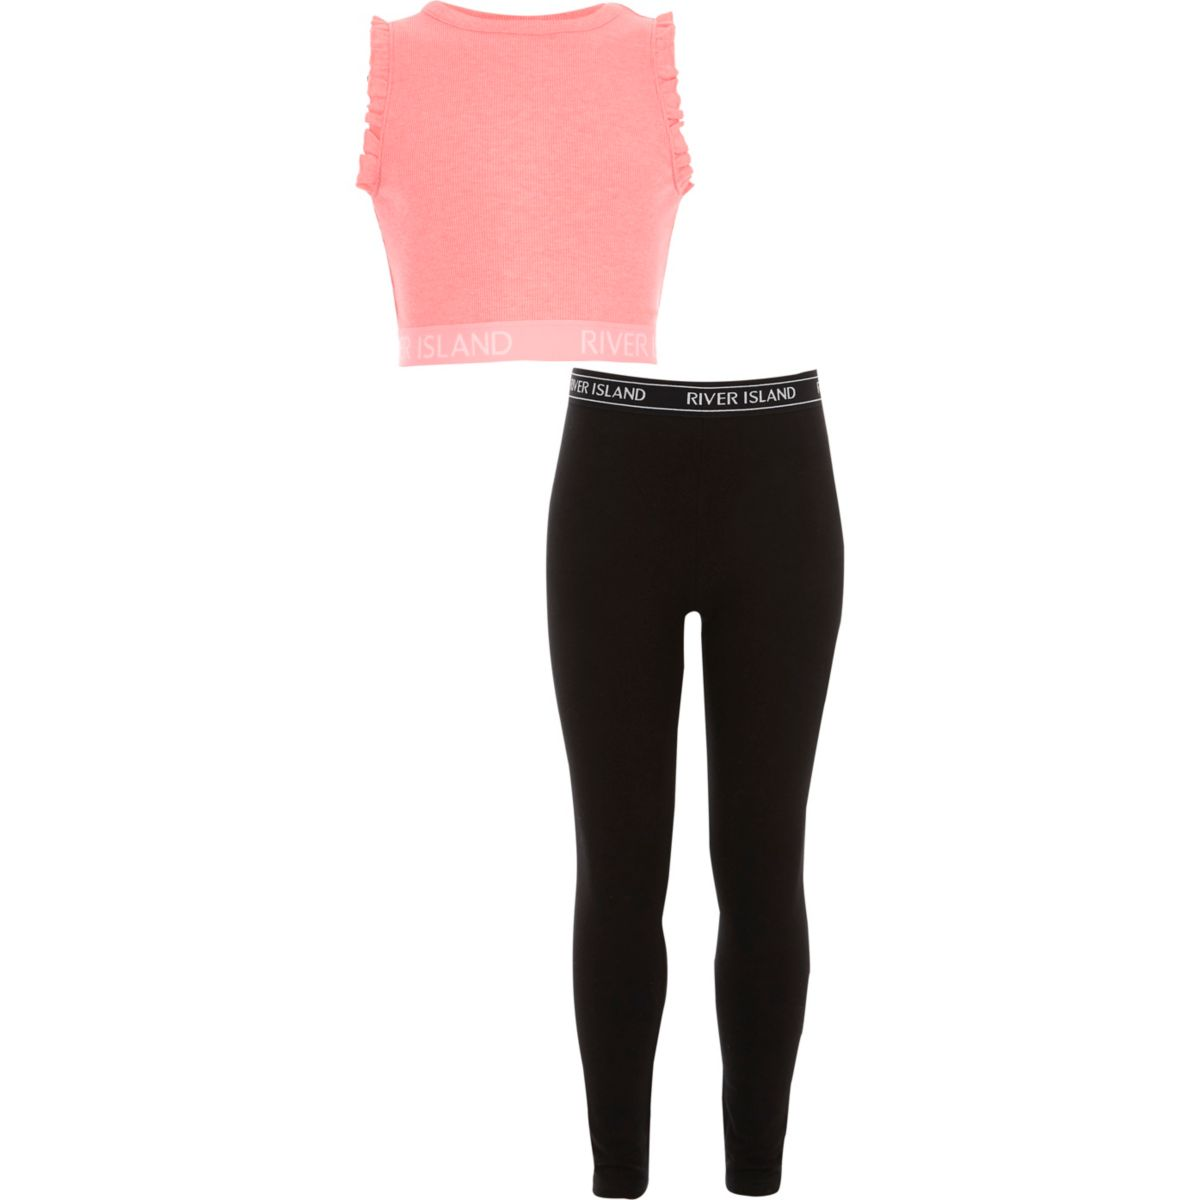 Girls pink branded waistband crop top outfit